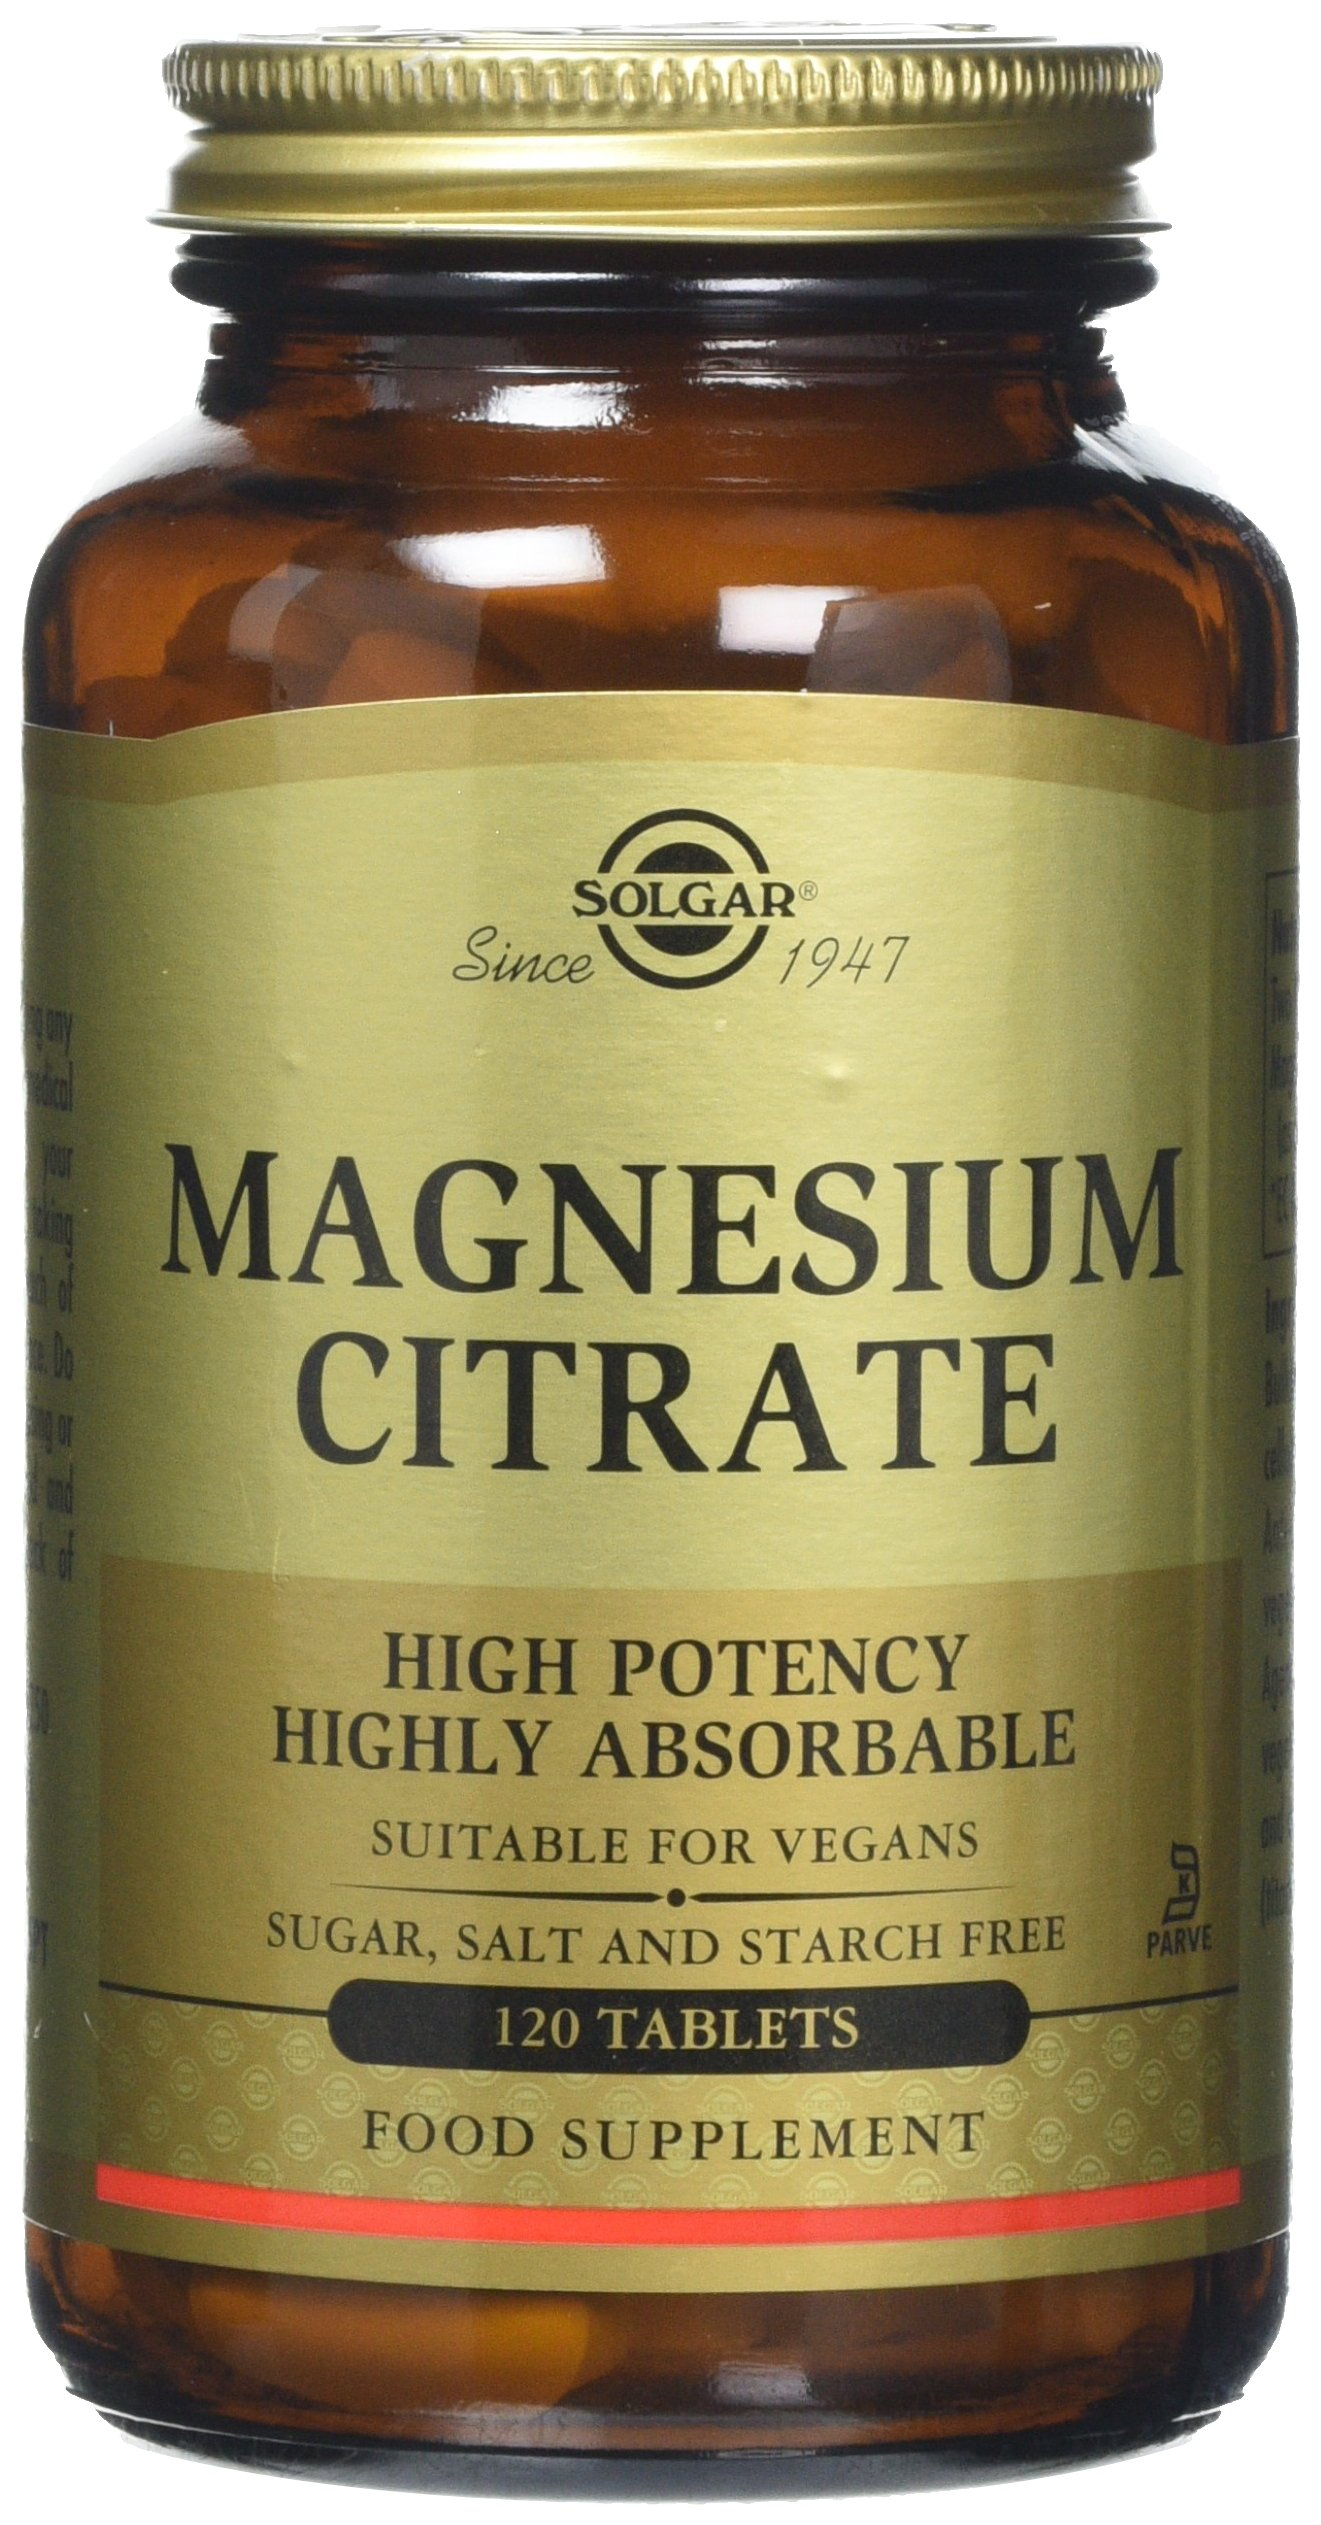 Solgar 400mg Magnesium Citrate Highly Absorbable Dietary Supplement 120 Tablets